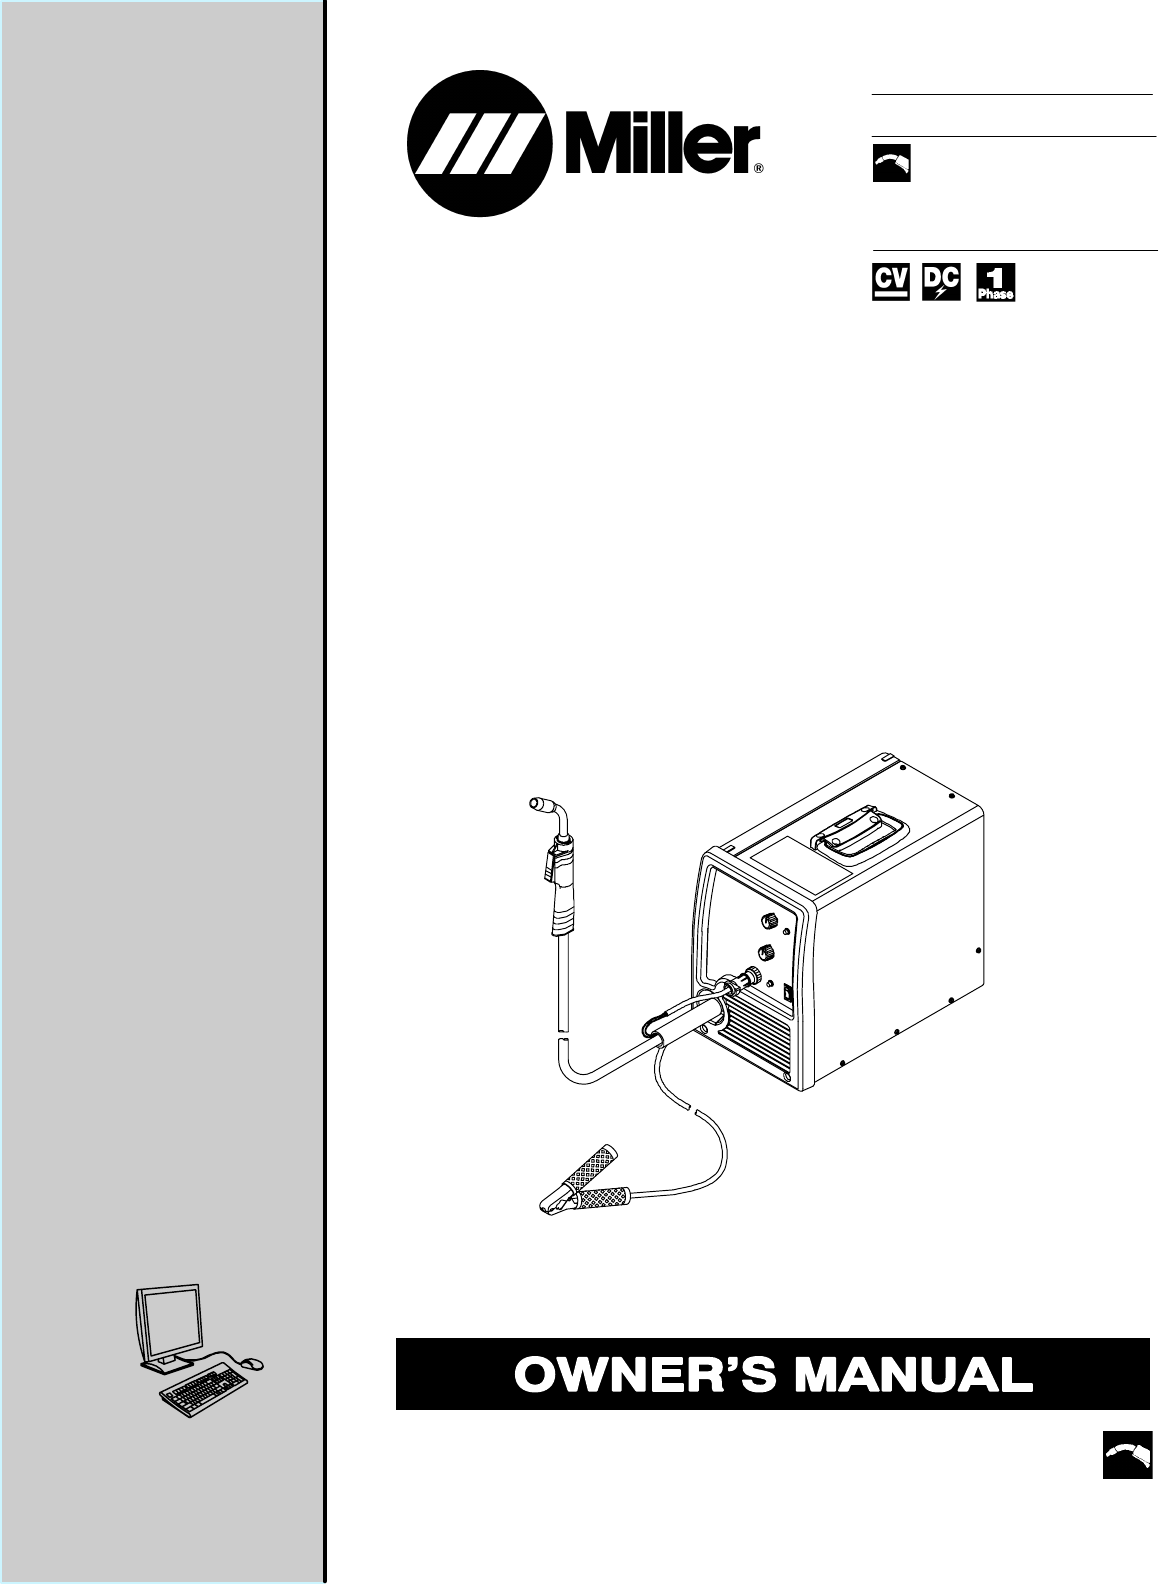 Miller Electric Welding System 180 User Guide